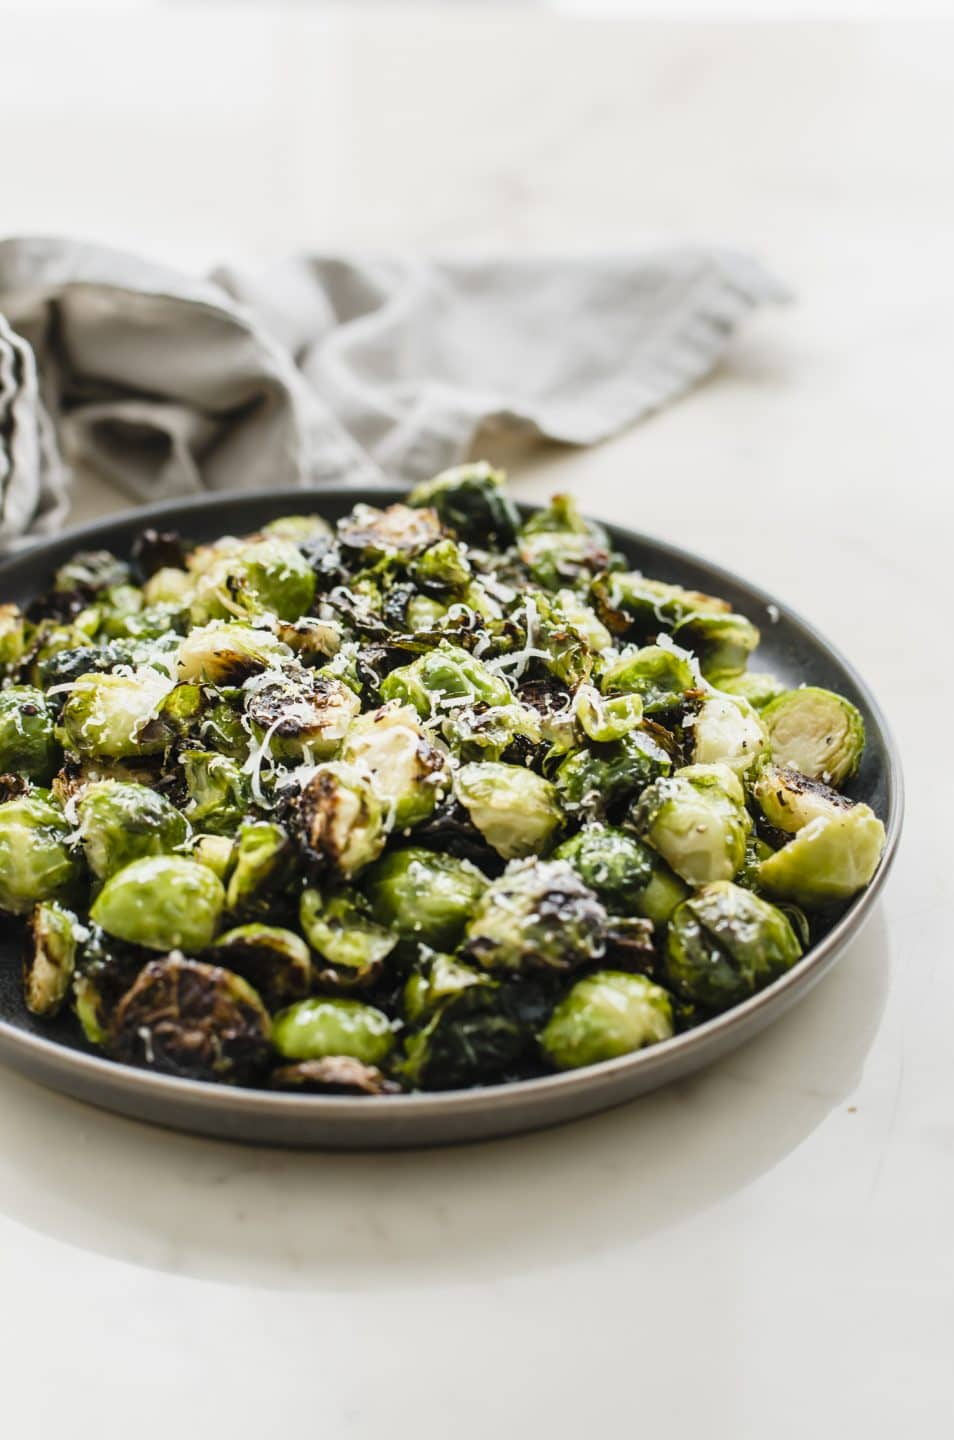 A grey plate filled with crispy roasted brussels sprouts on a marble countertop.